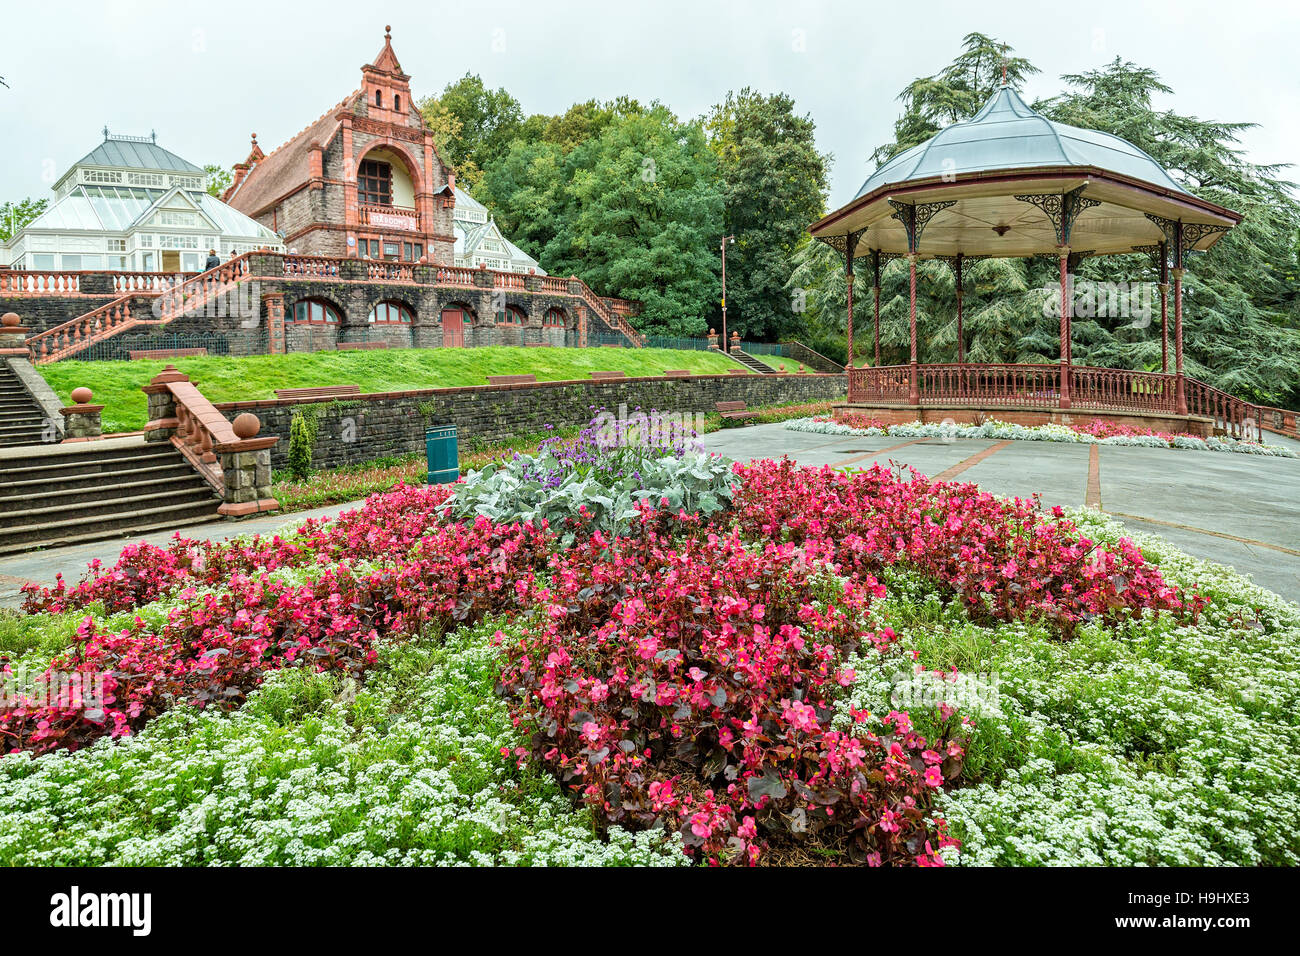 Bandstand and flowerbed with begonias in Belle Vue public park, Newport, Gwent, UK - Stock Image